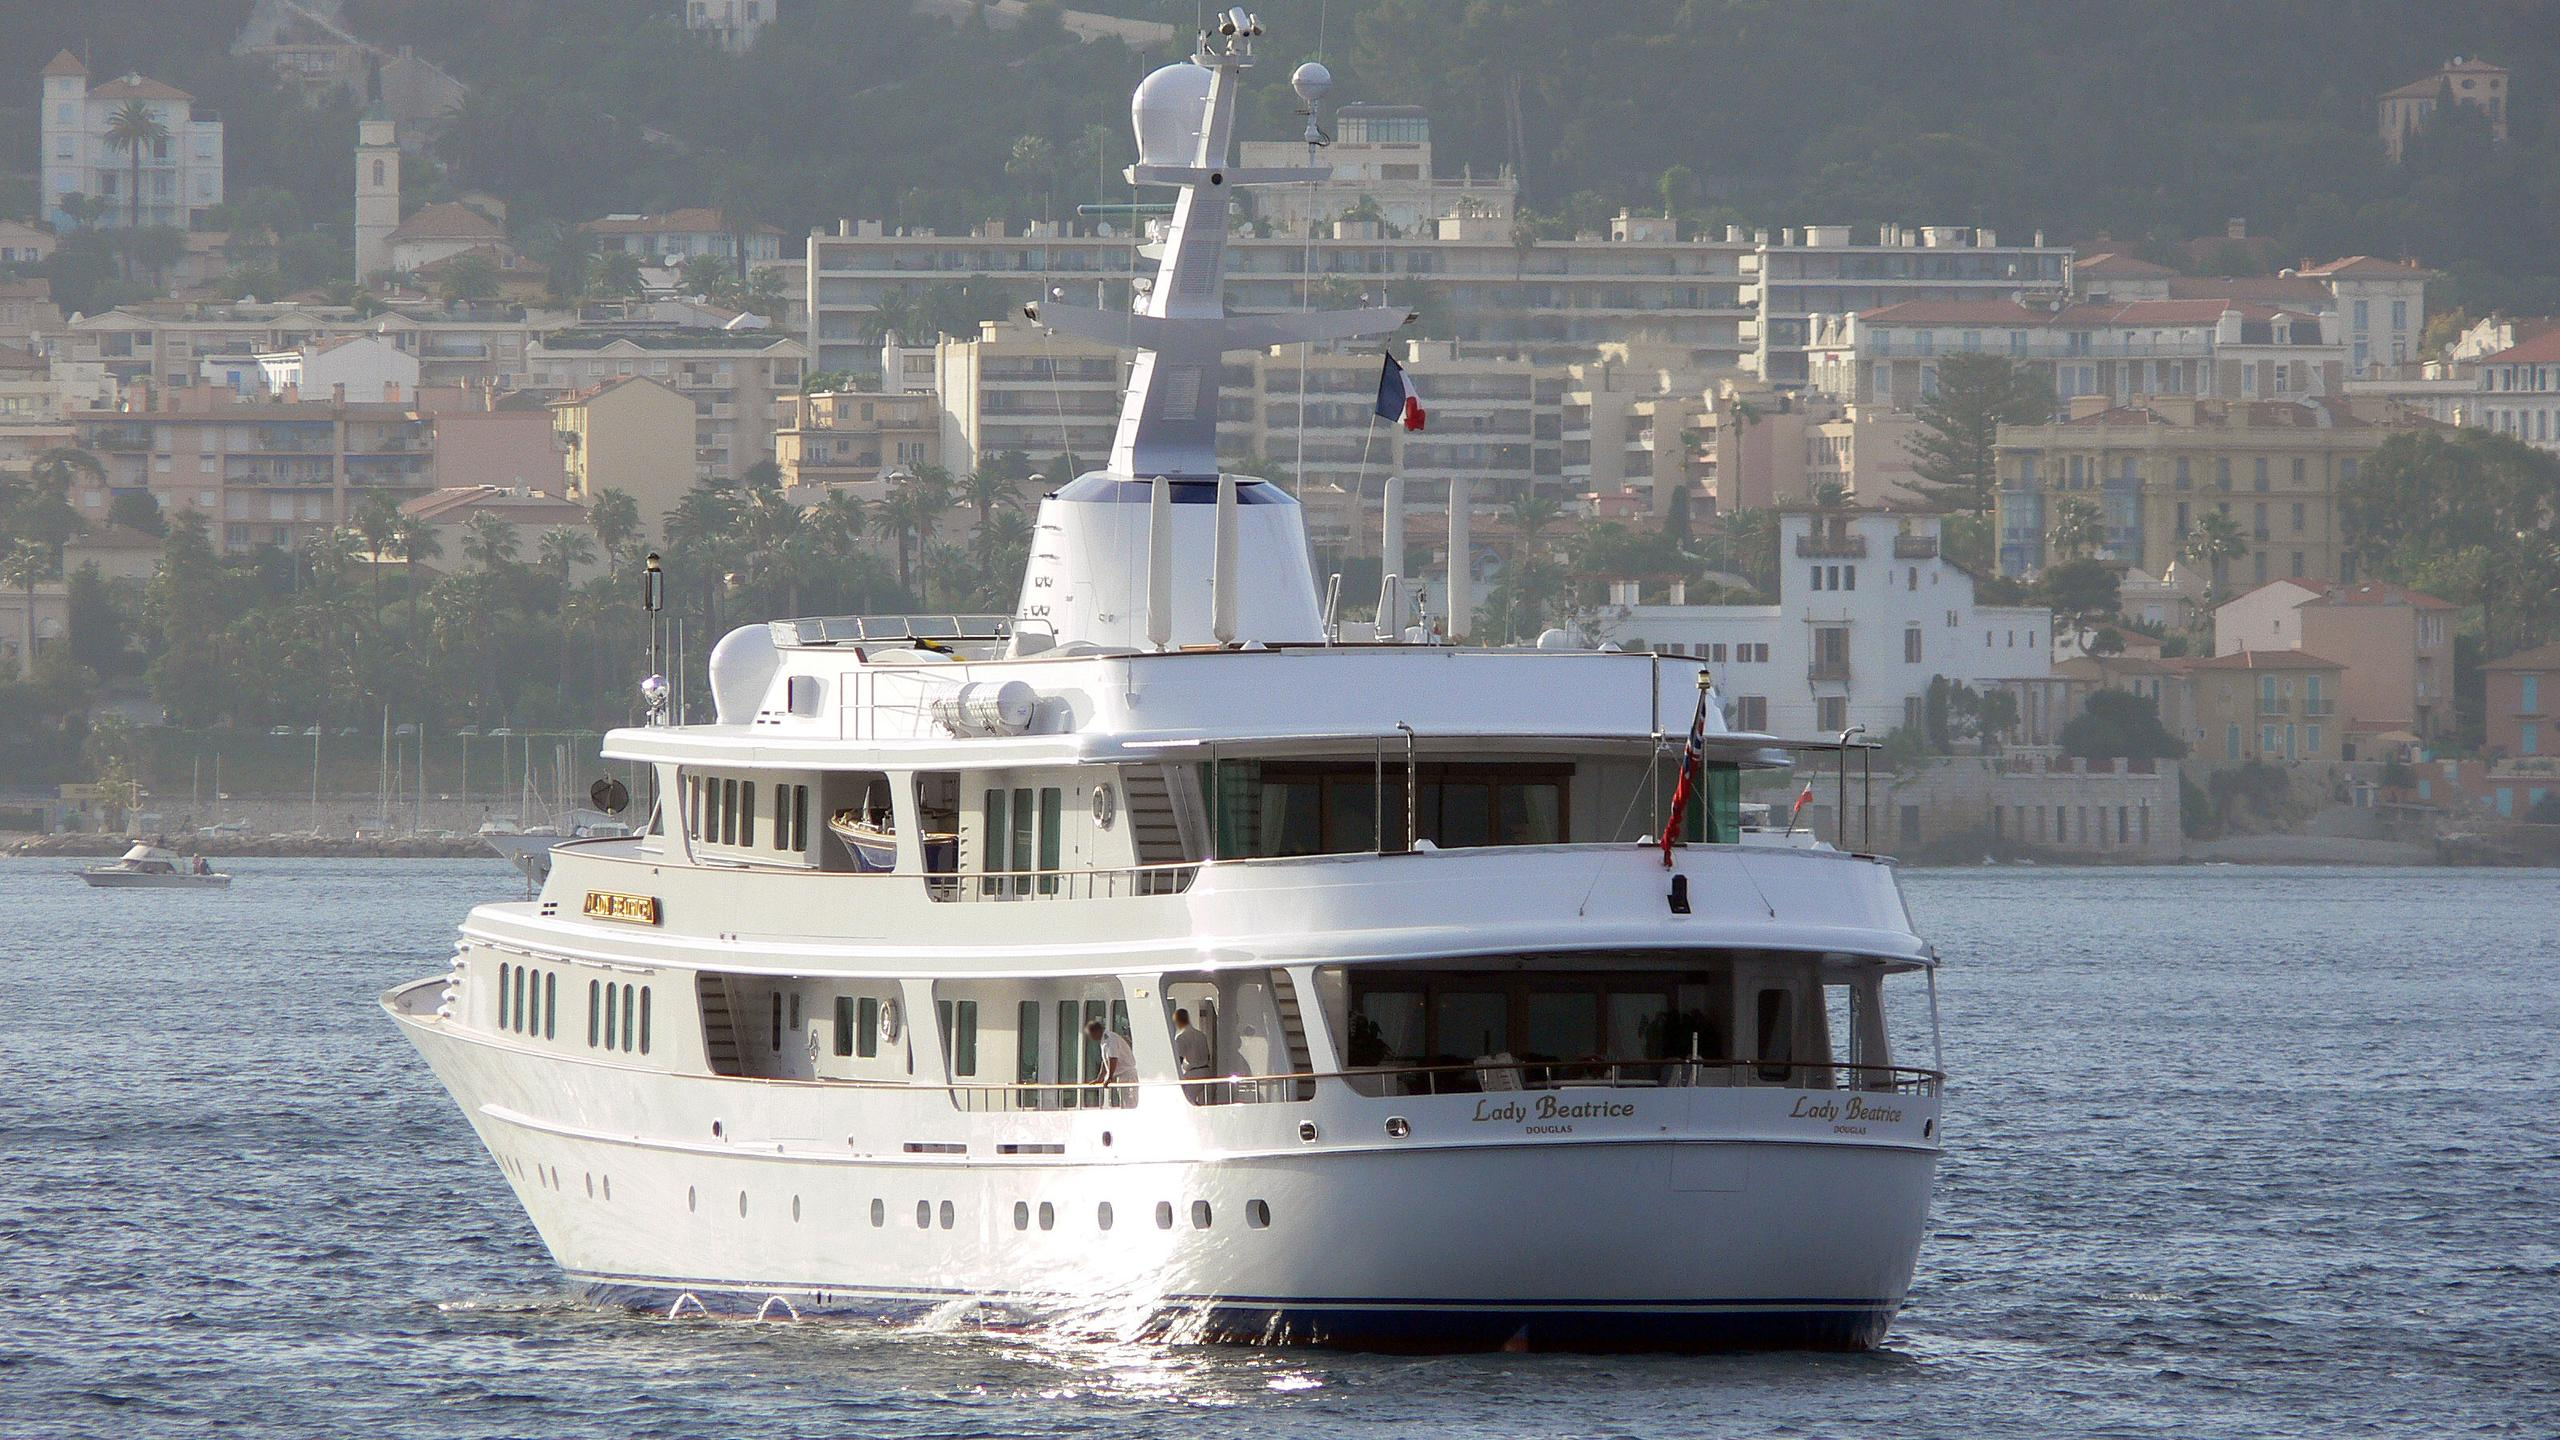 lady-beatrice-motor-yacht-feadship-1993-60m-stern